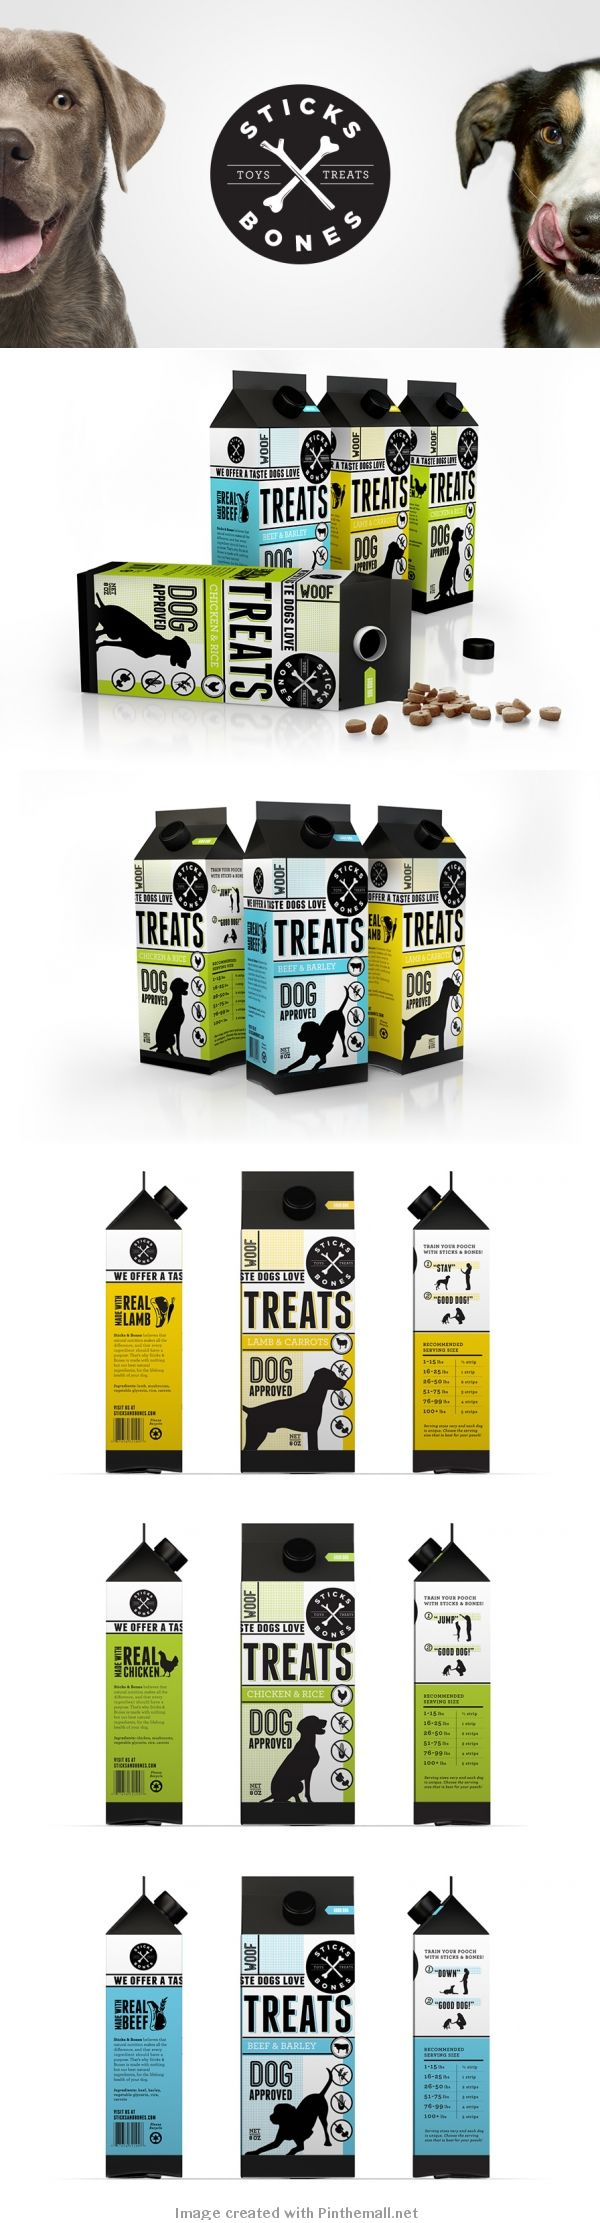 fa05d661206812d08f9de54d6666b95d--dog-treat-packaging-clever-packaging